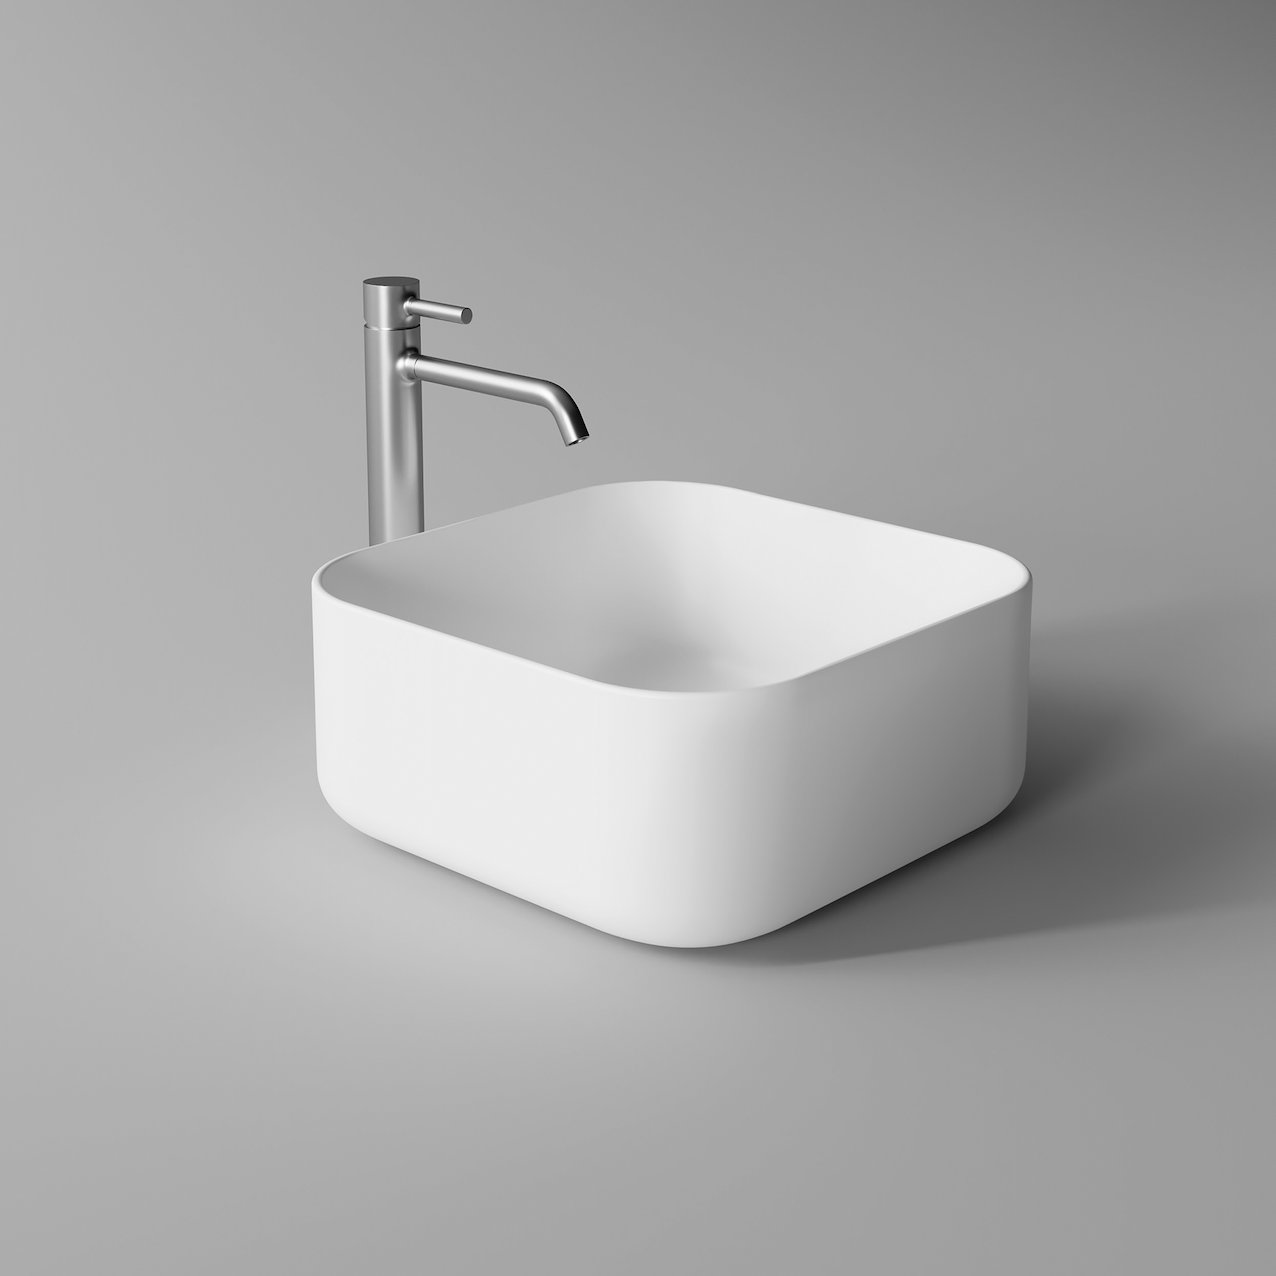 Washbasin UNICA square